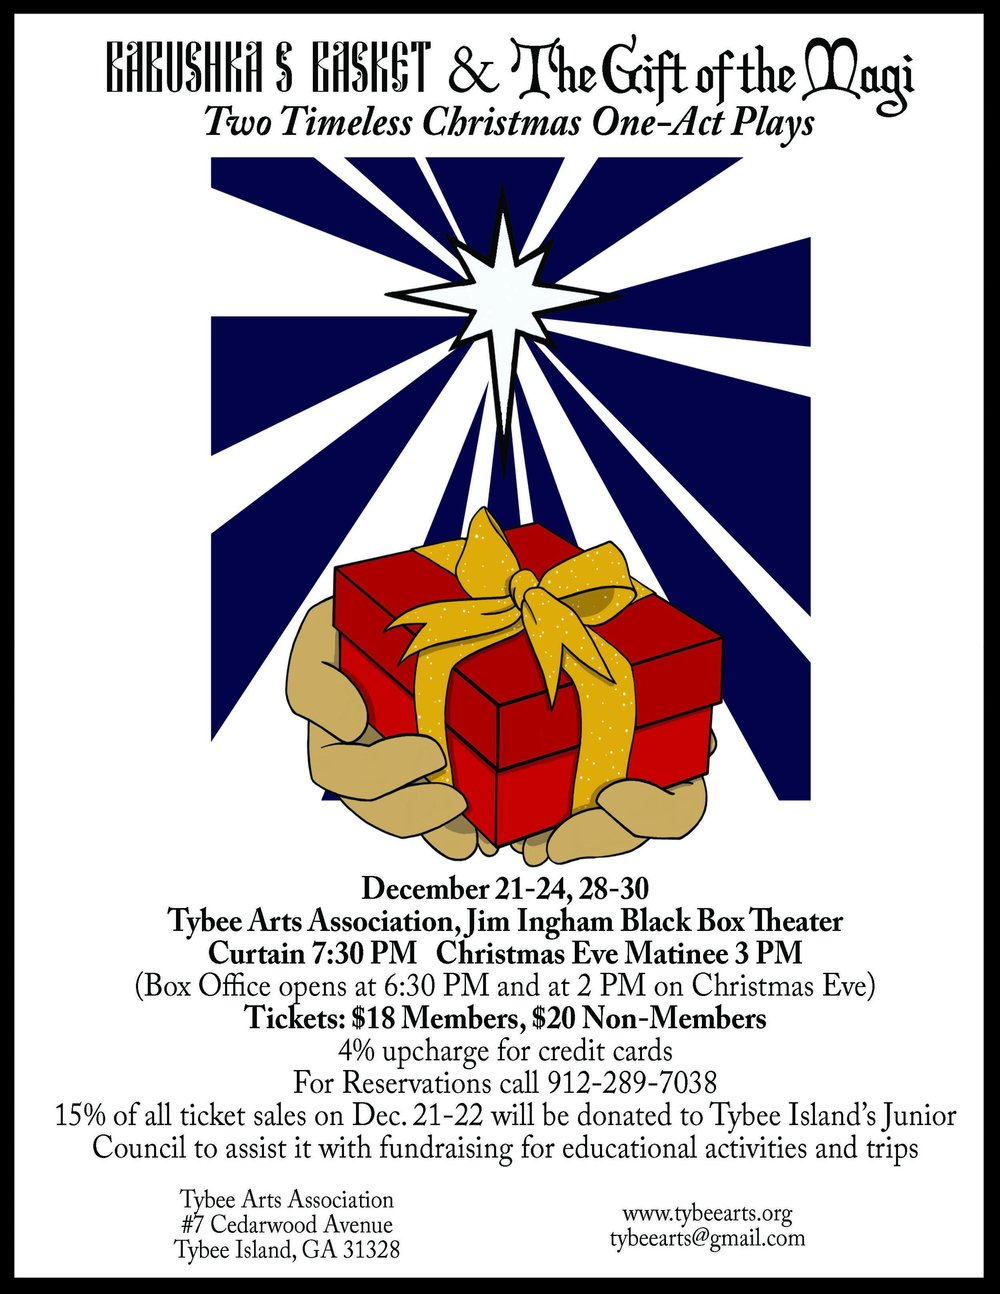 Babushka's Basket & The Gift of the Magi - Two Timeless Christmas One-Act Plays